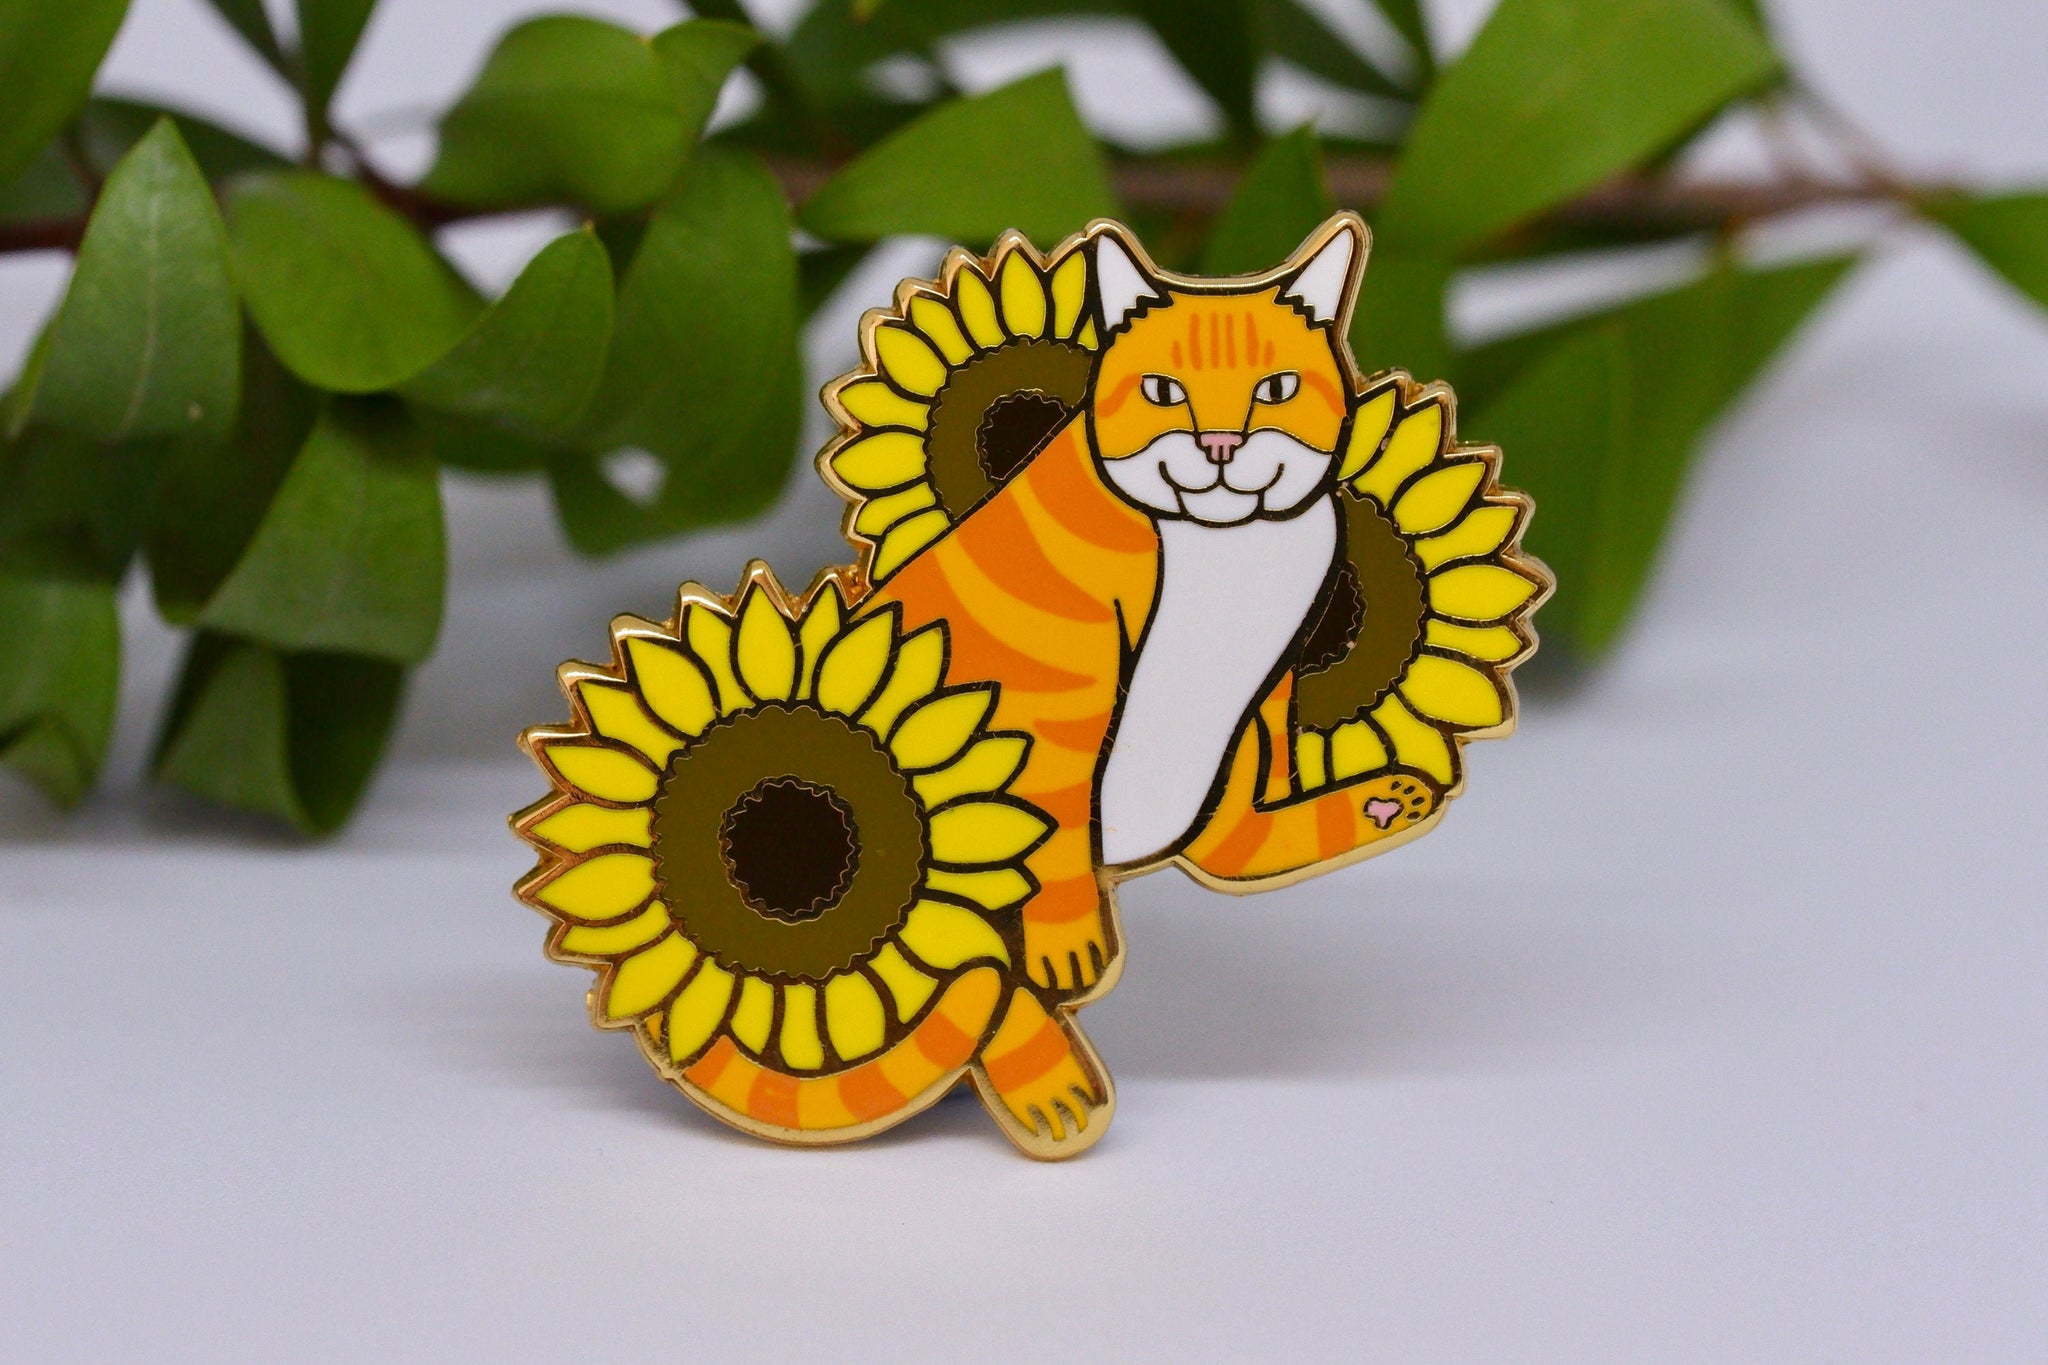 Cat and Sunflowers Hard Enamel Pin - Orange and White Tabby Cat - Ginger Cat - Lapel Pin, Cloissone Badge